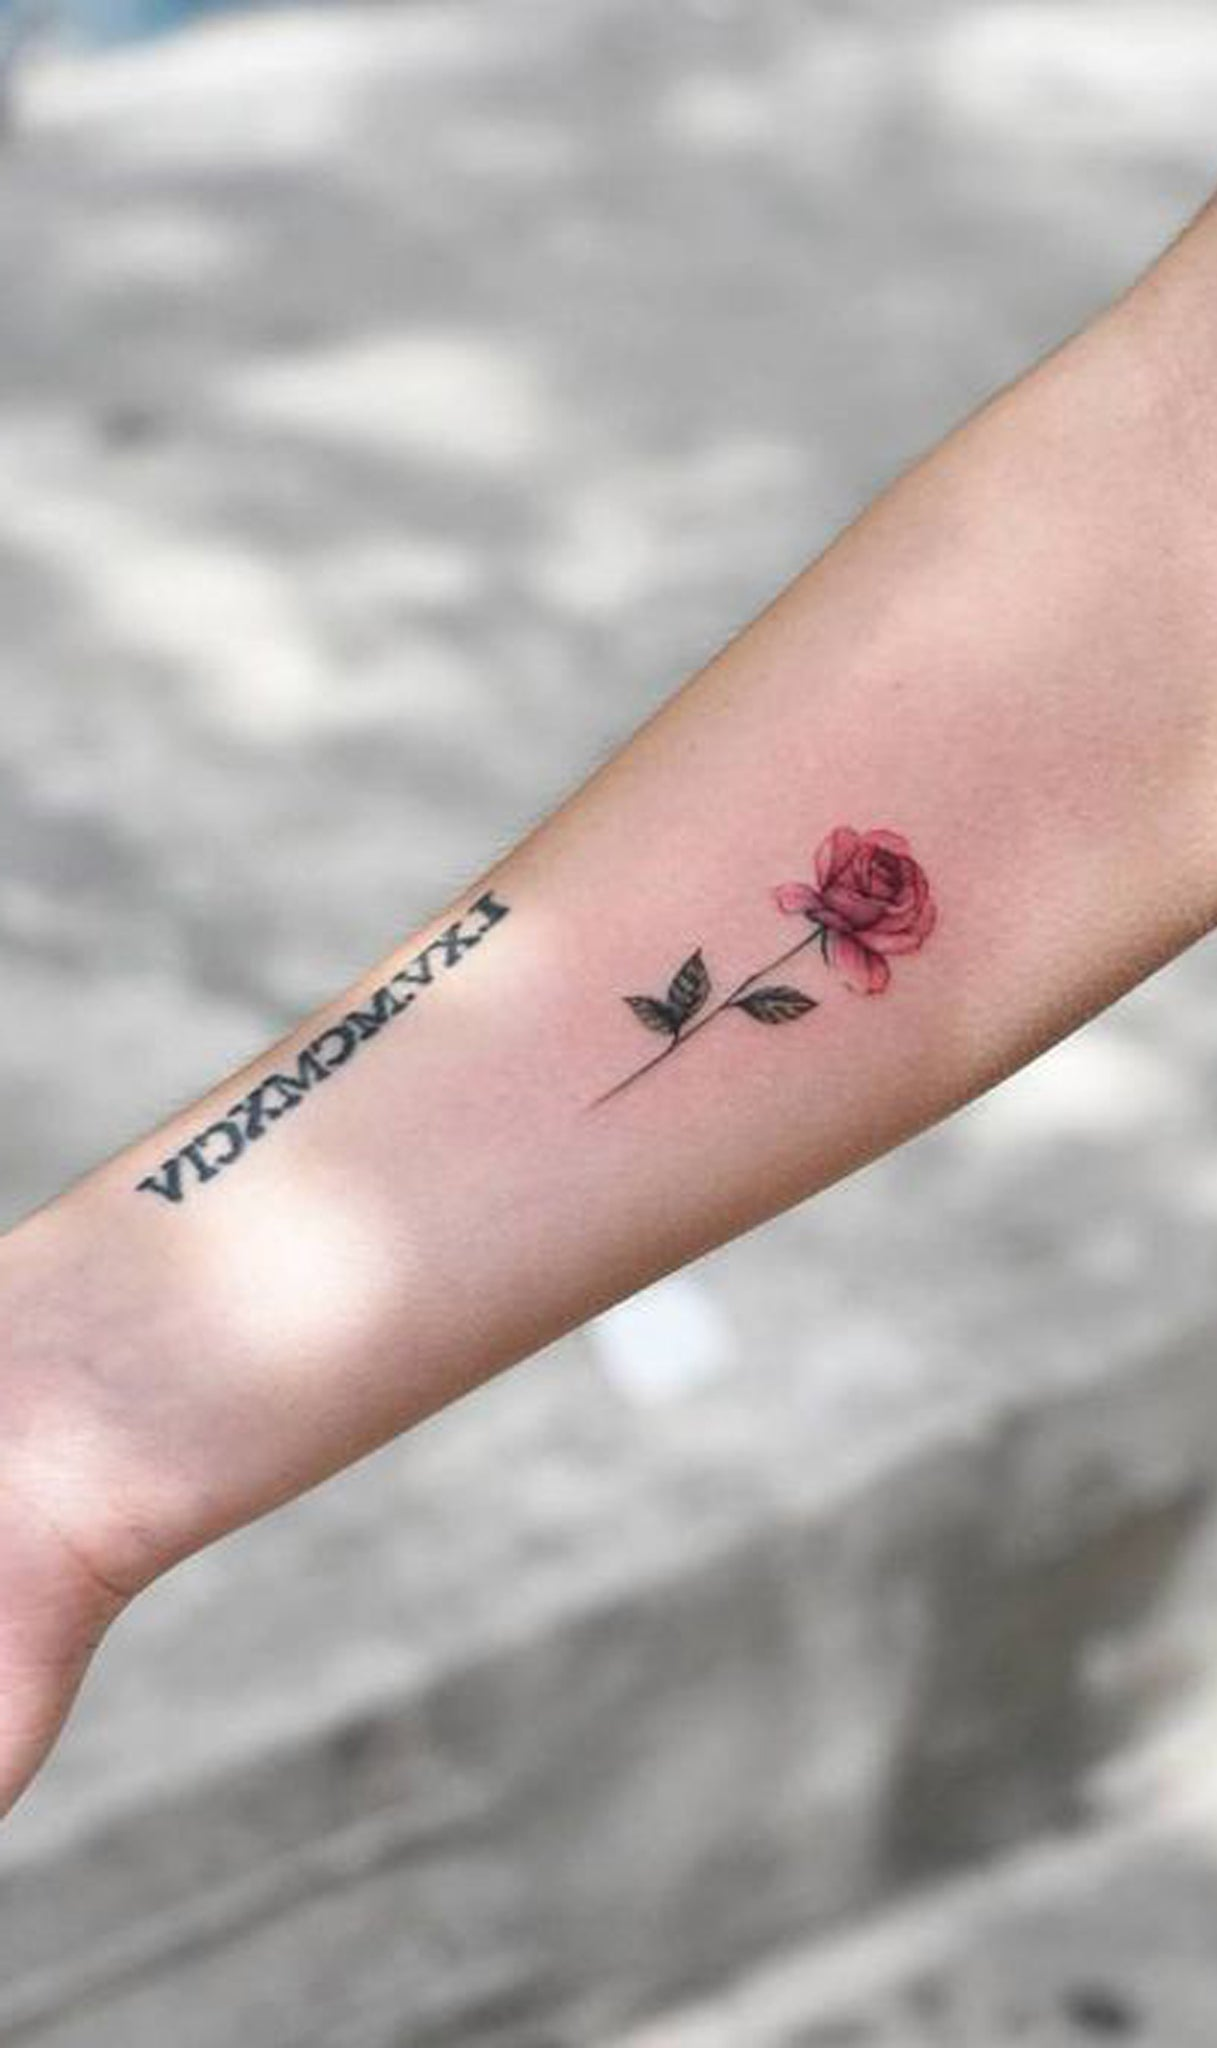 30+ Simple and Small Flower Tattoos Ideas for Women \u2013 MyBodiArt